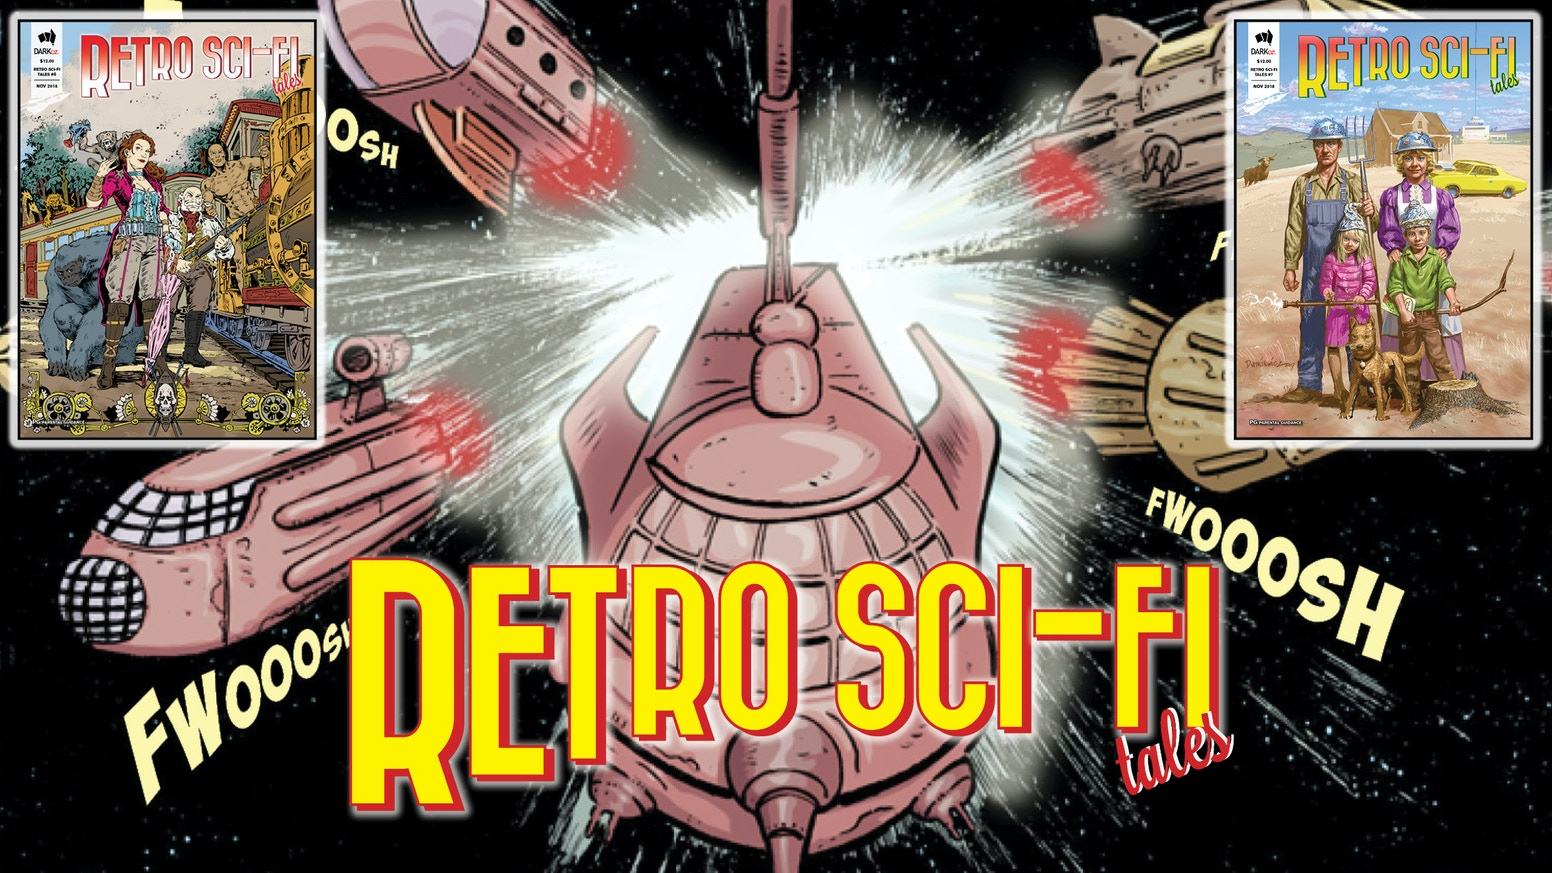 Retro Sci-Fi Tales - anthology comics, old-school style 'retro' science fiction stories, amazing fun! Family friendly, aimed at adults.